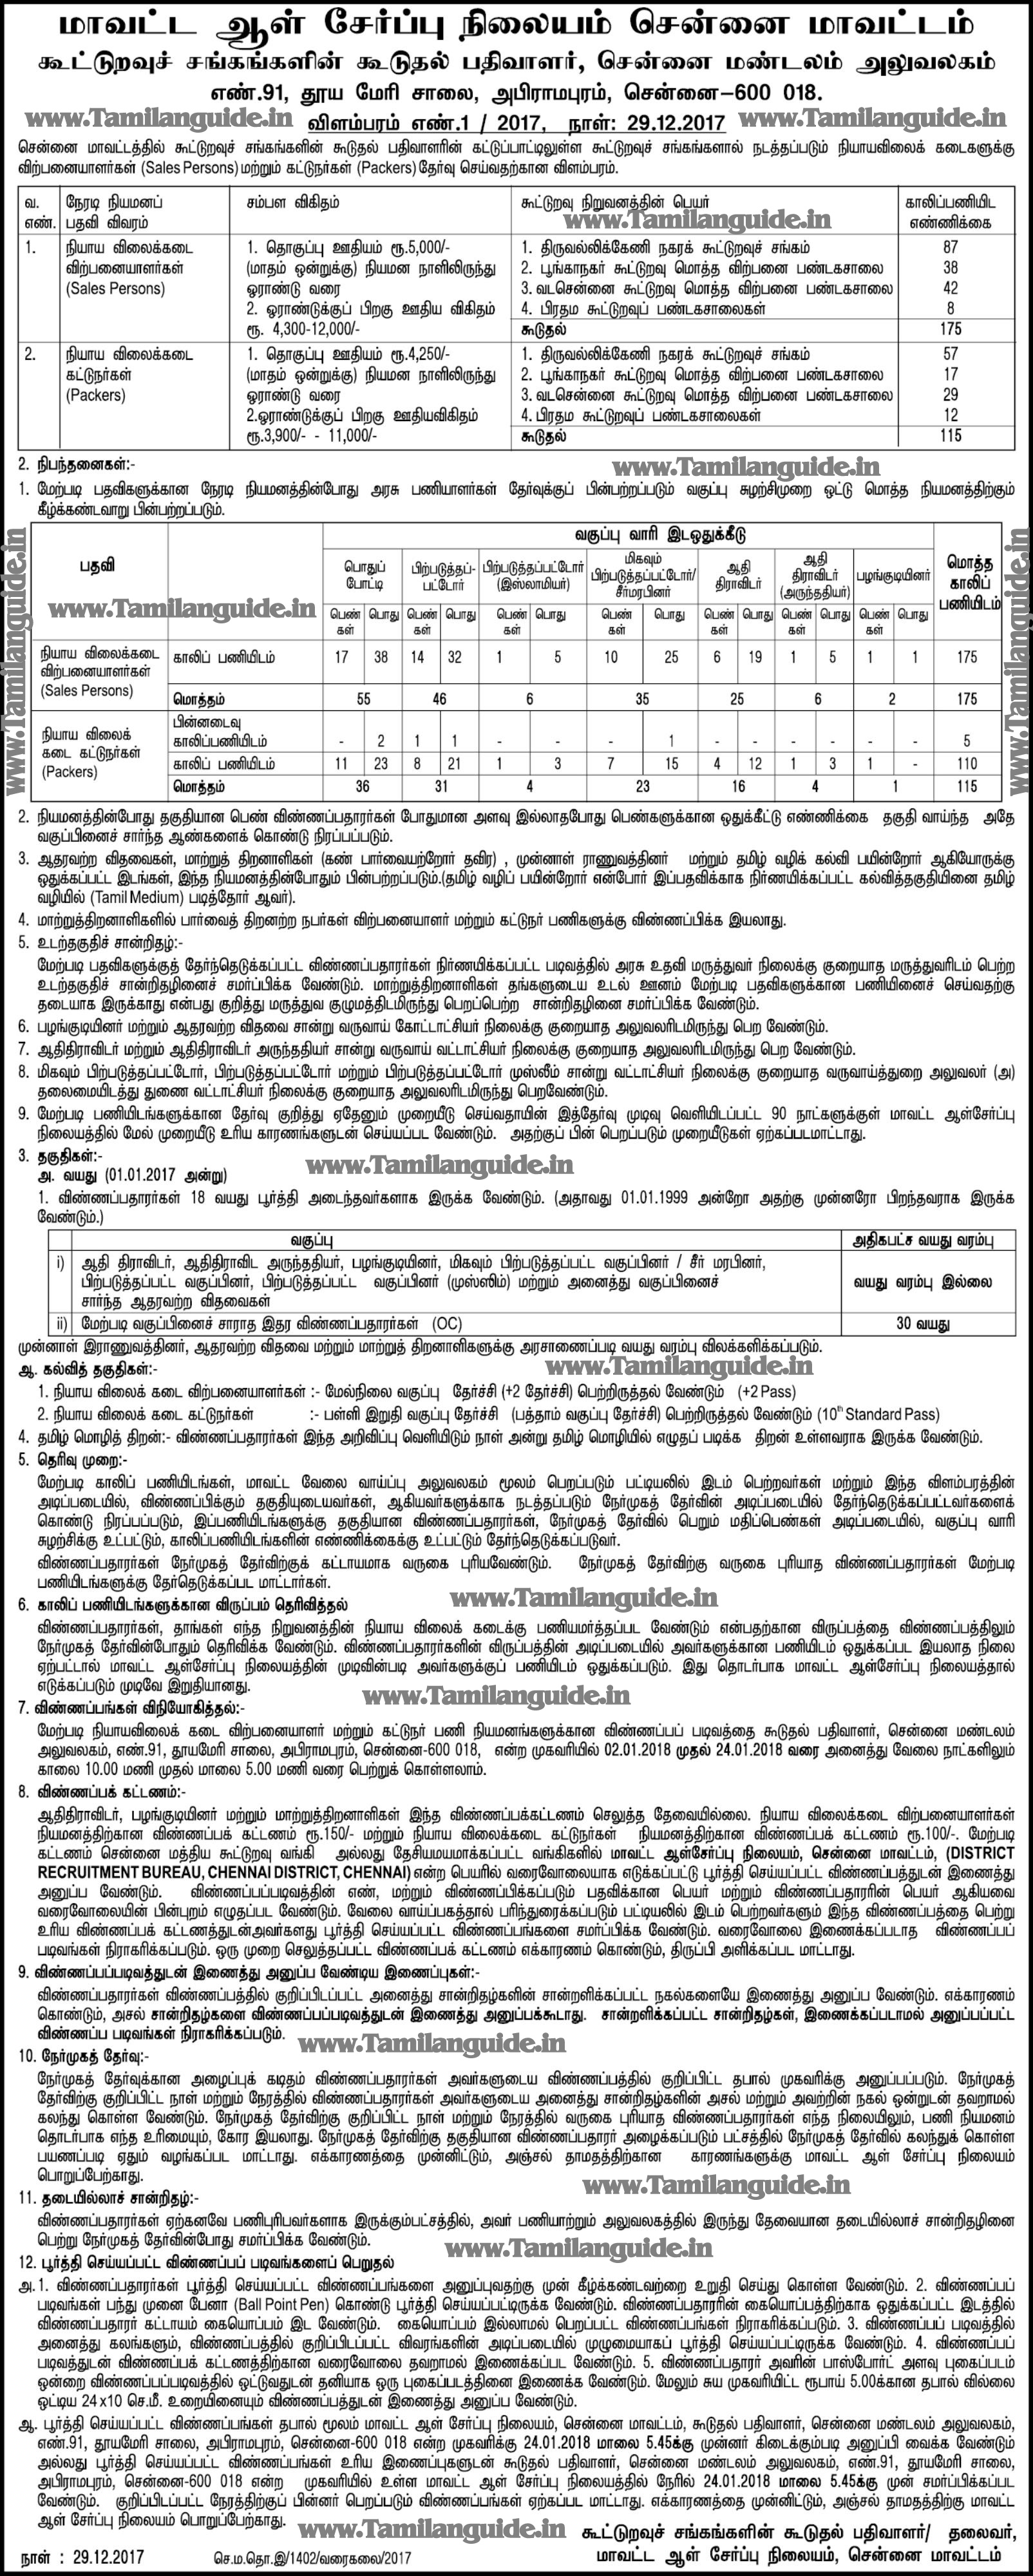 content writing jobs in chennai 24 april 2018 - content writer jobs in virtue it services - chennai we are looking for freshers to hire for content writing excellent english communication skills requiredknowledge in.